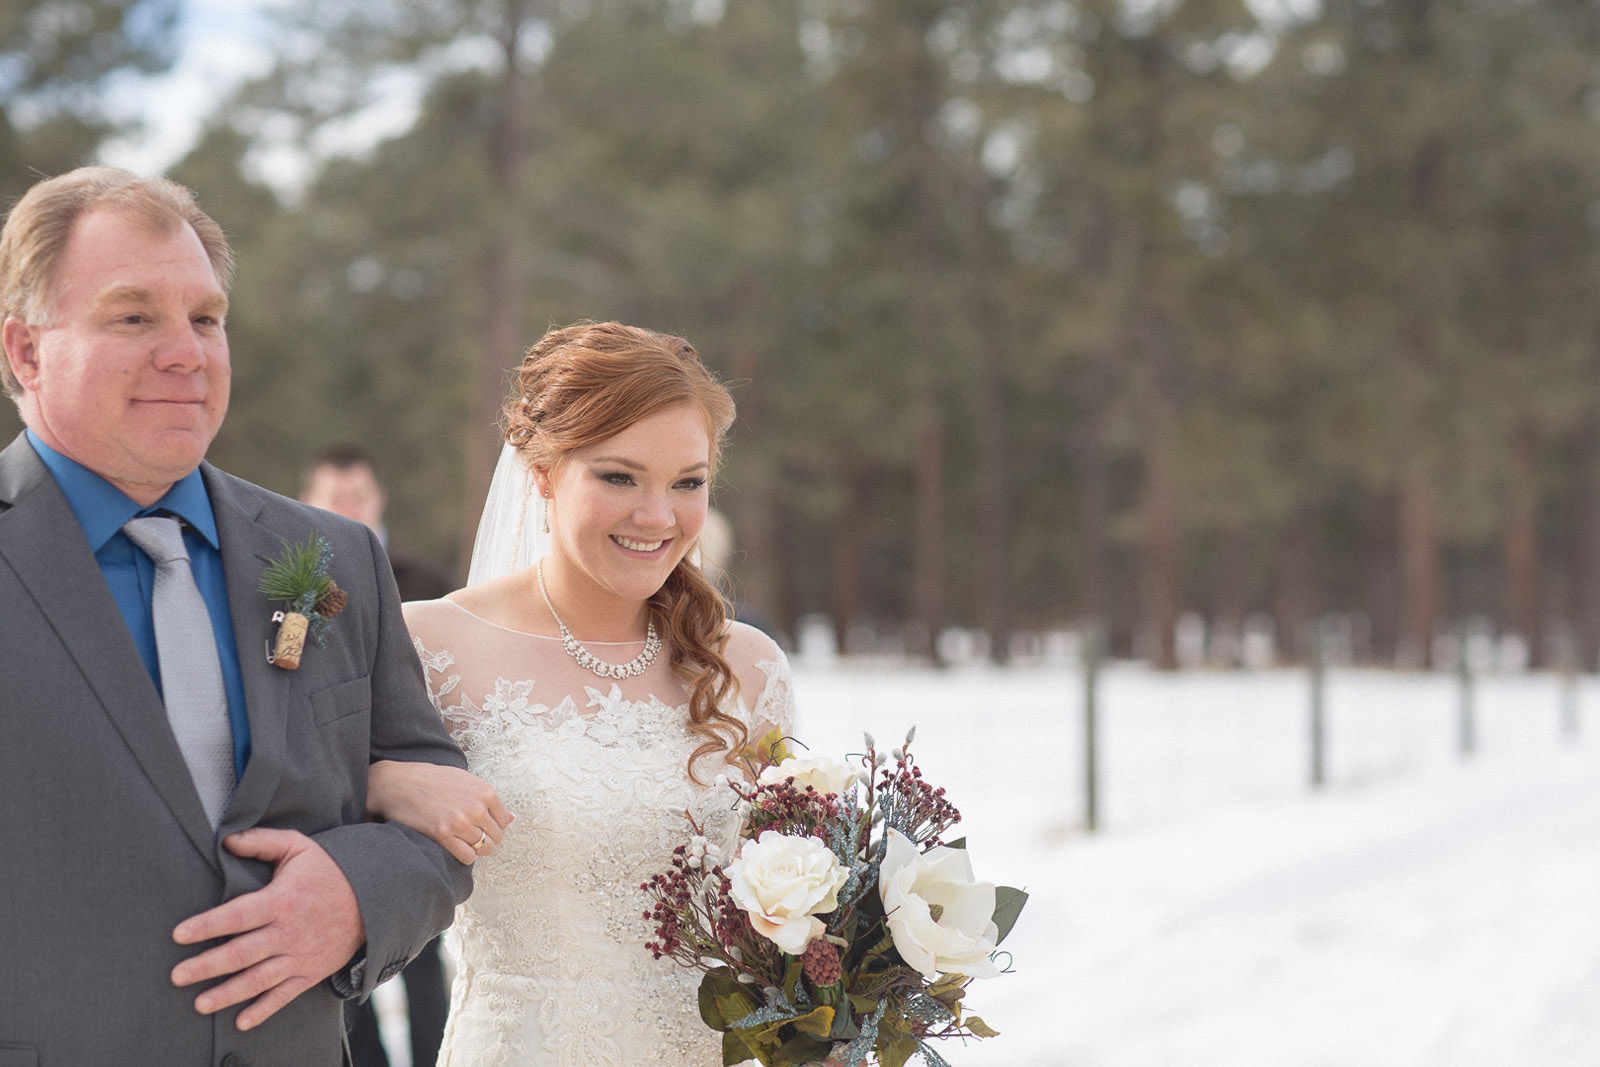 095-wedding-ceremony-in-pagosa-springs-wedding-photographer-snow-winter-wedding